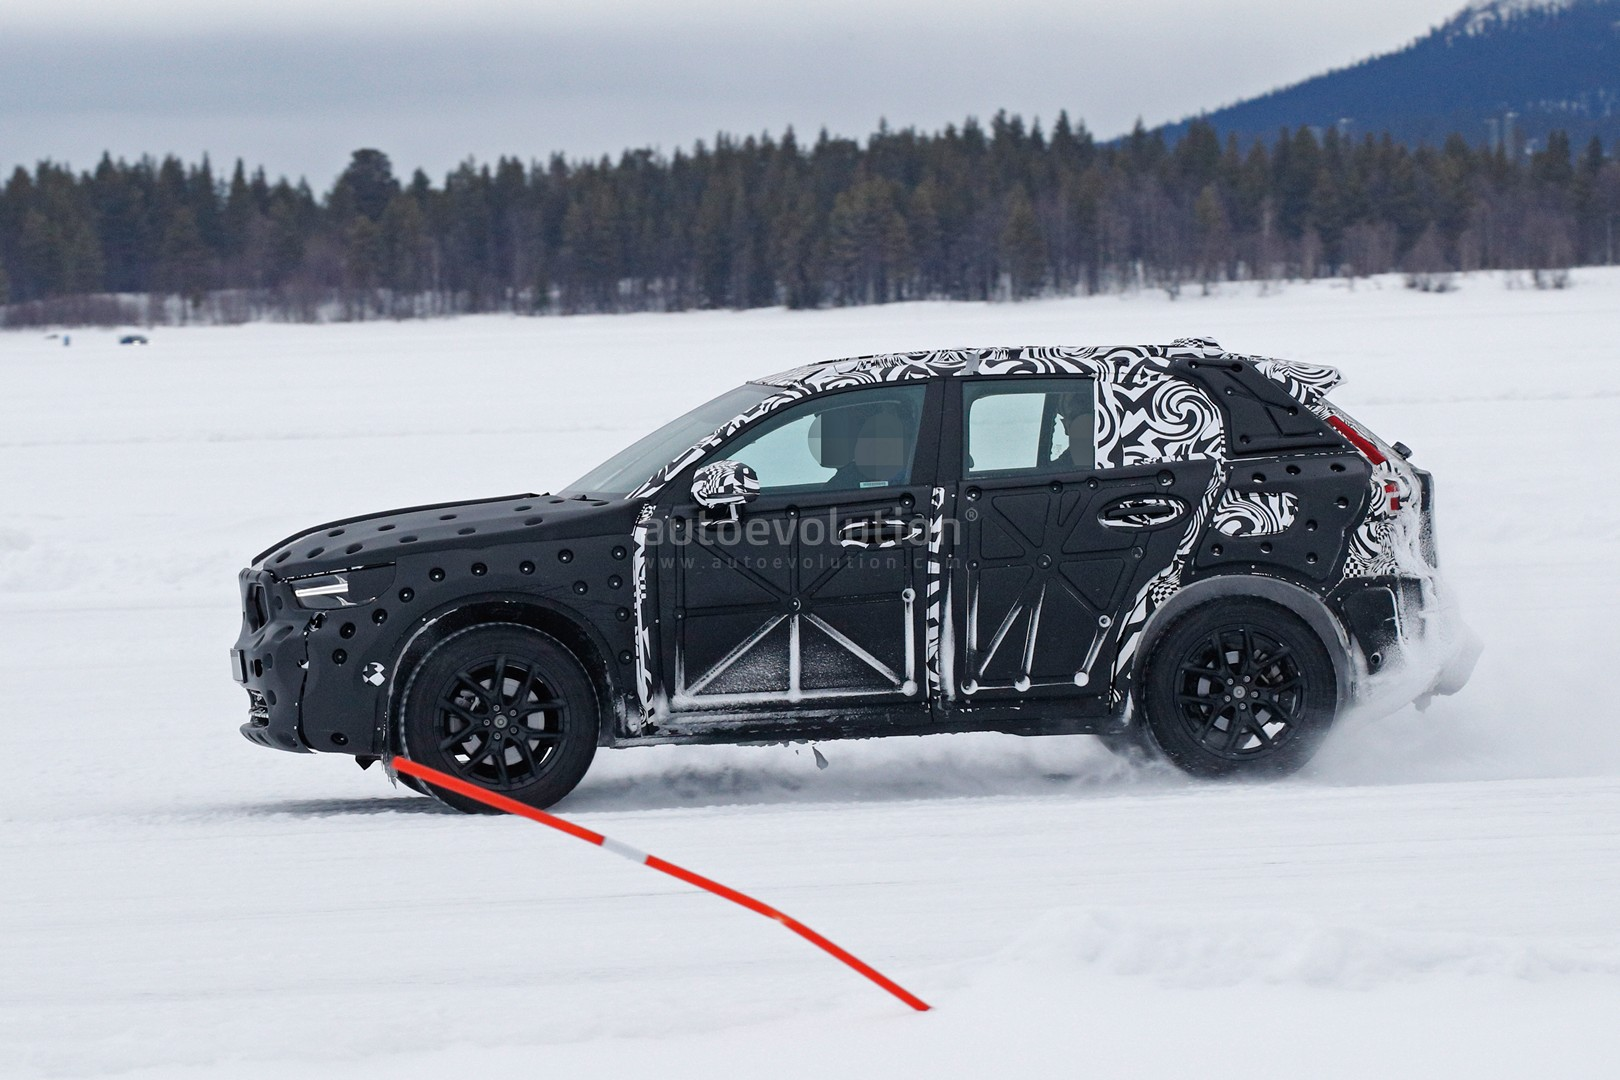 volvo-xc40-spied-undergoing-winter-testing-with-full-cabin_5